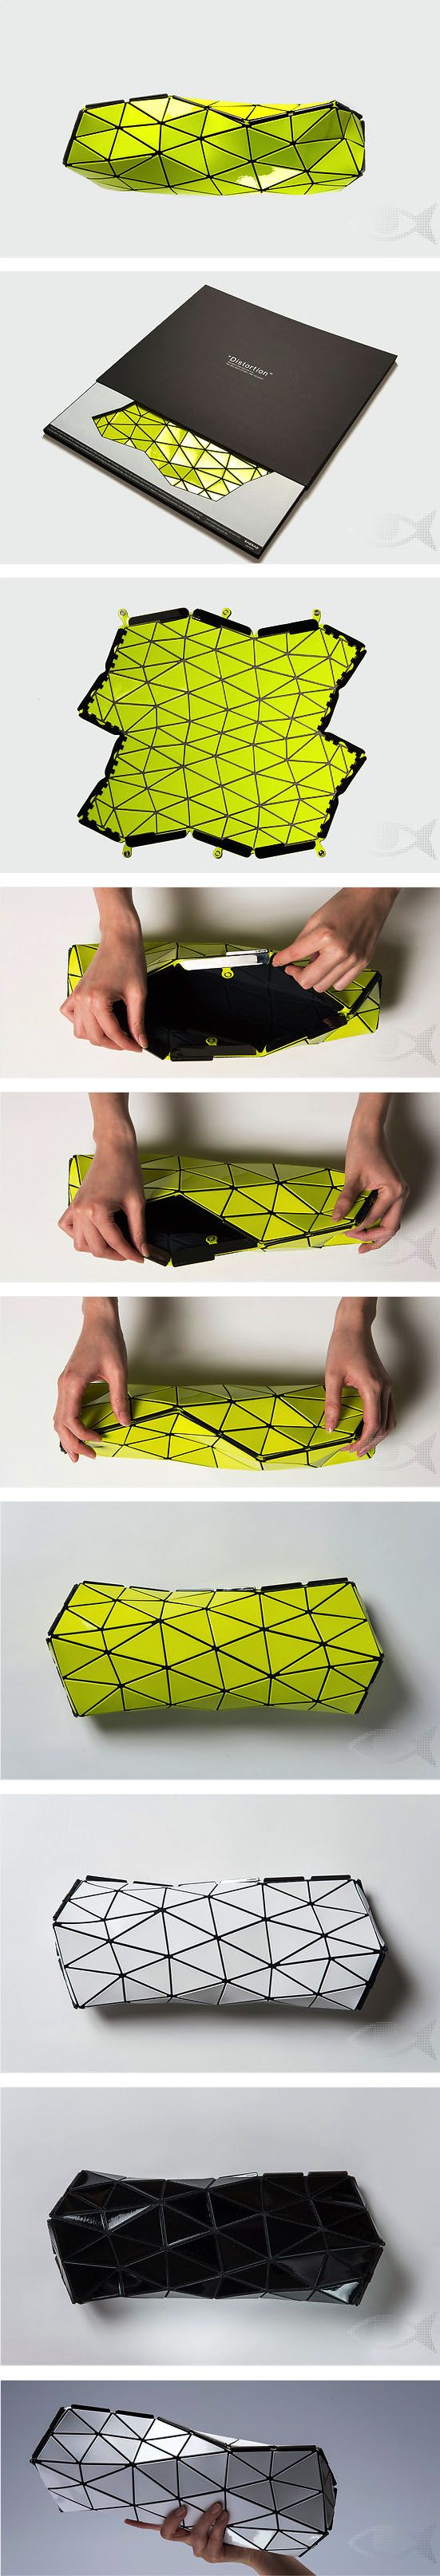 The Distortion Bag by Bao Bao Issey Miyake employs complex geometries to get a collapsible origami clutch.